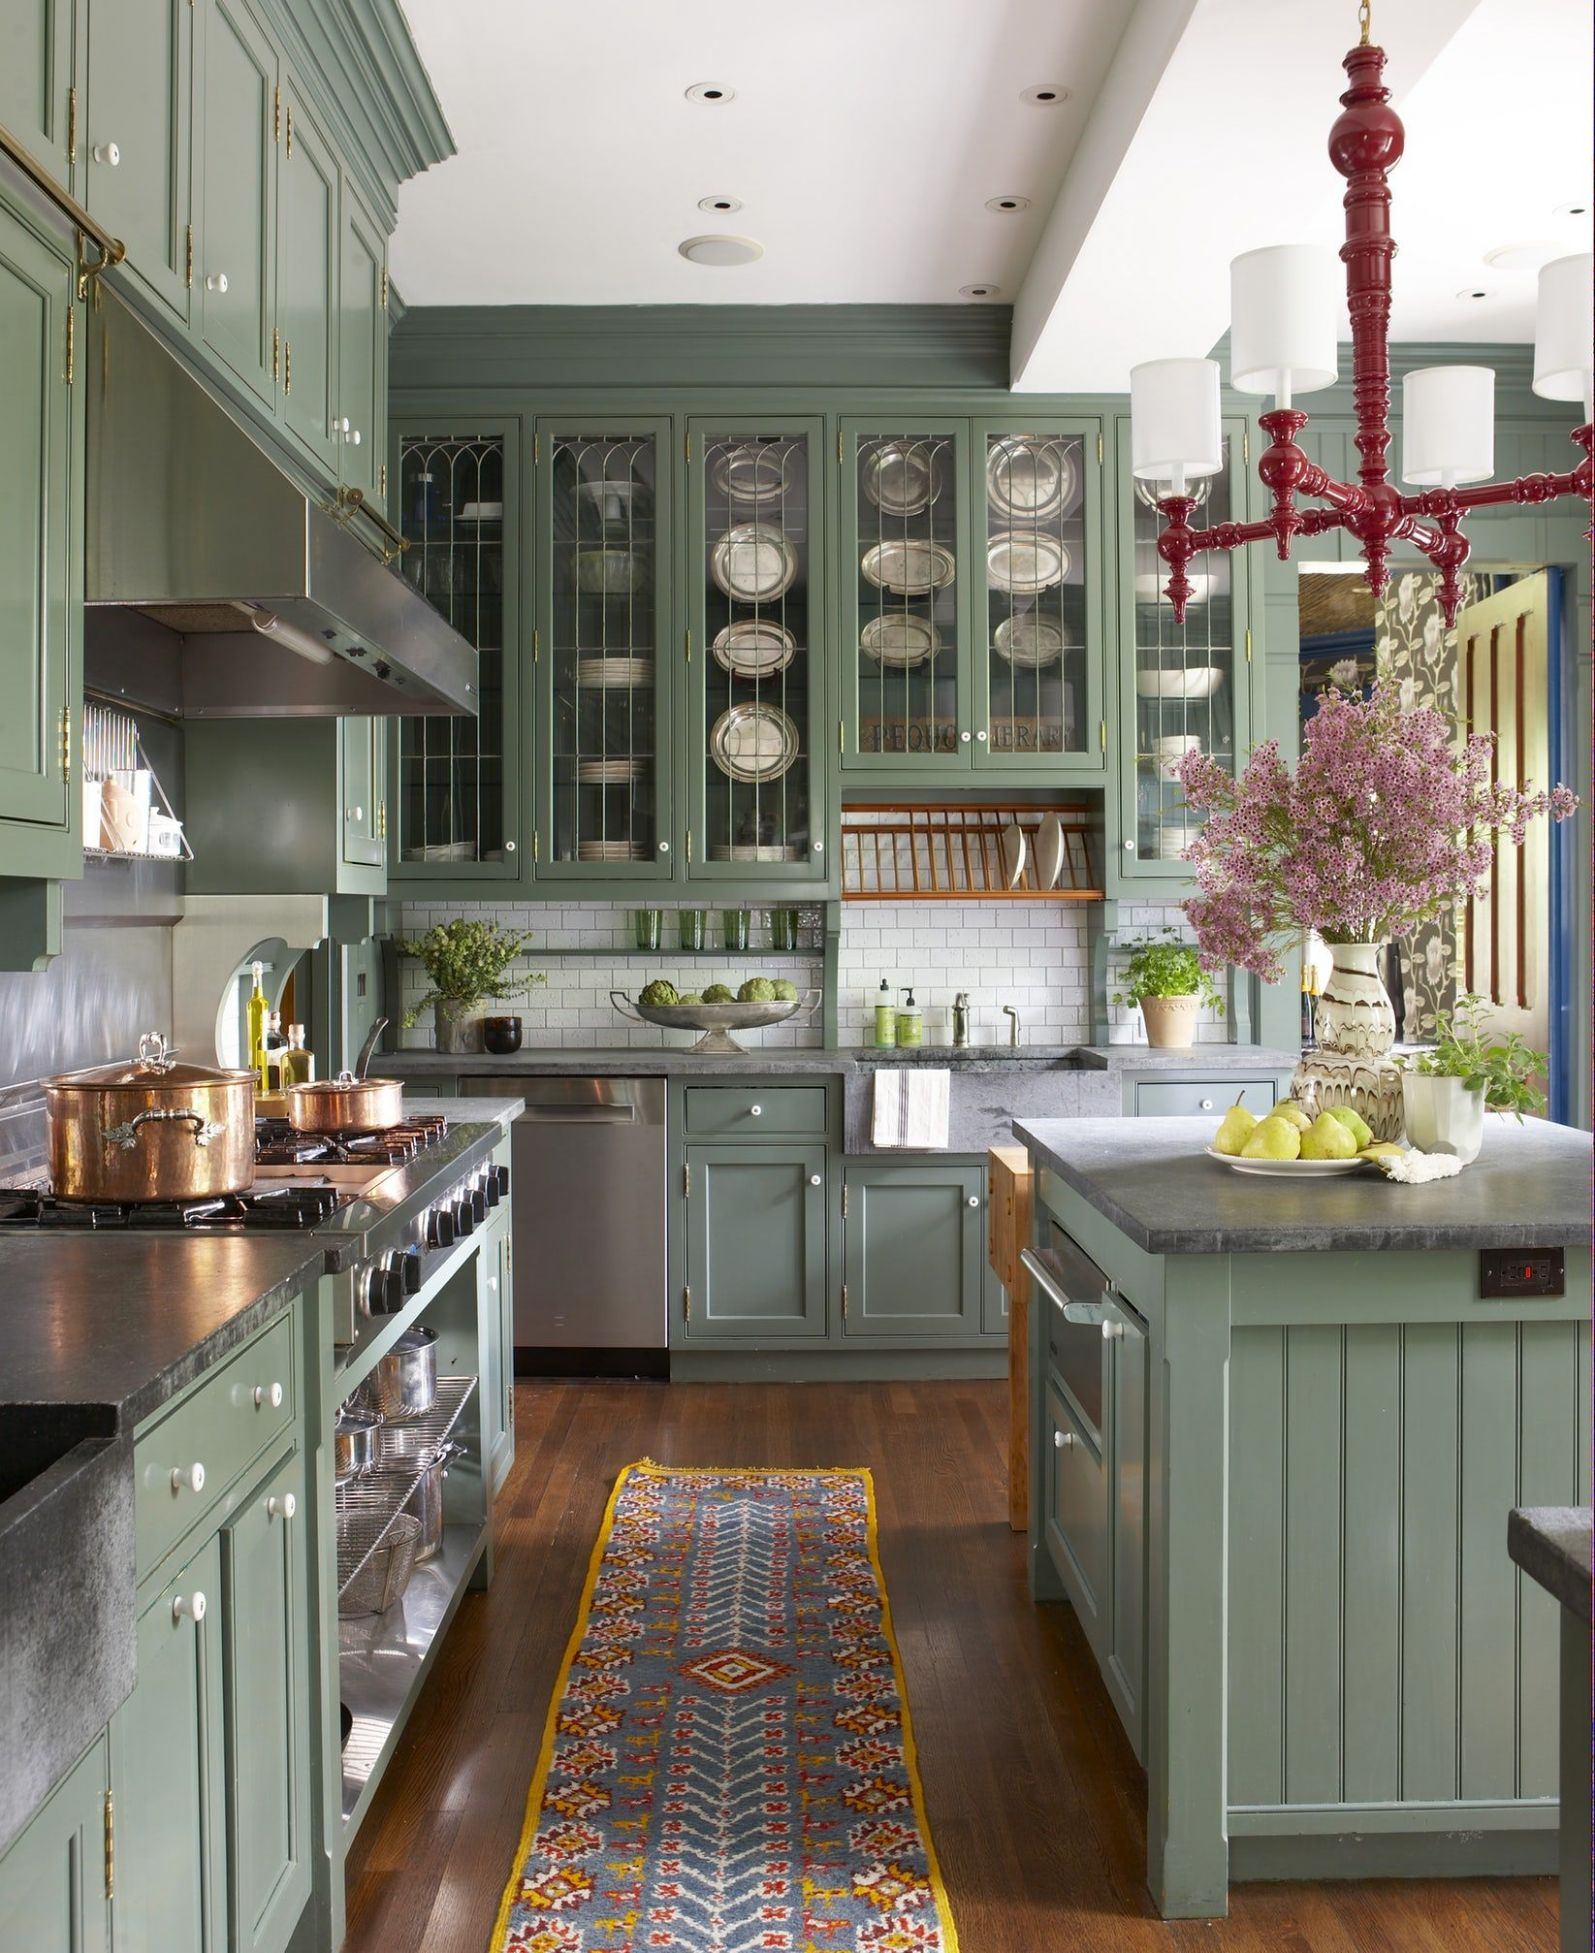 10 Green Kitchen Design Ideas - Paint Colors for Green Kitchens - kitchen ideas green